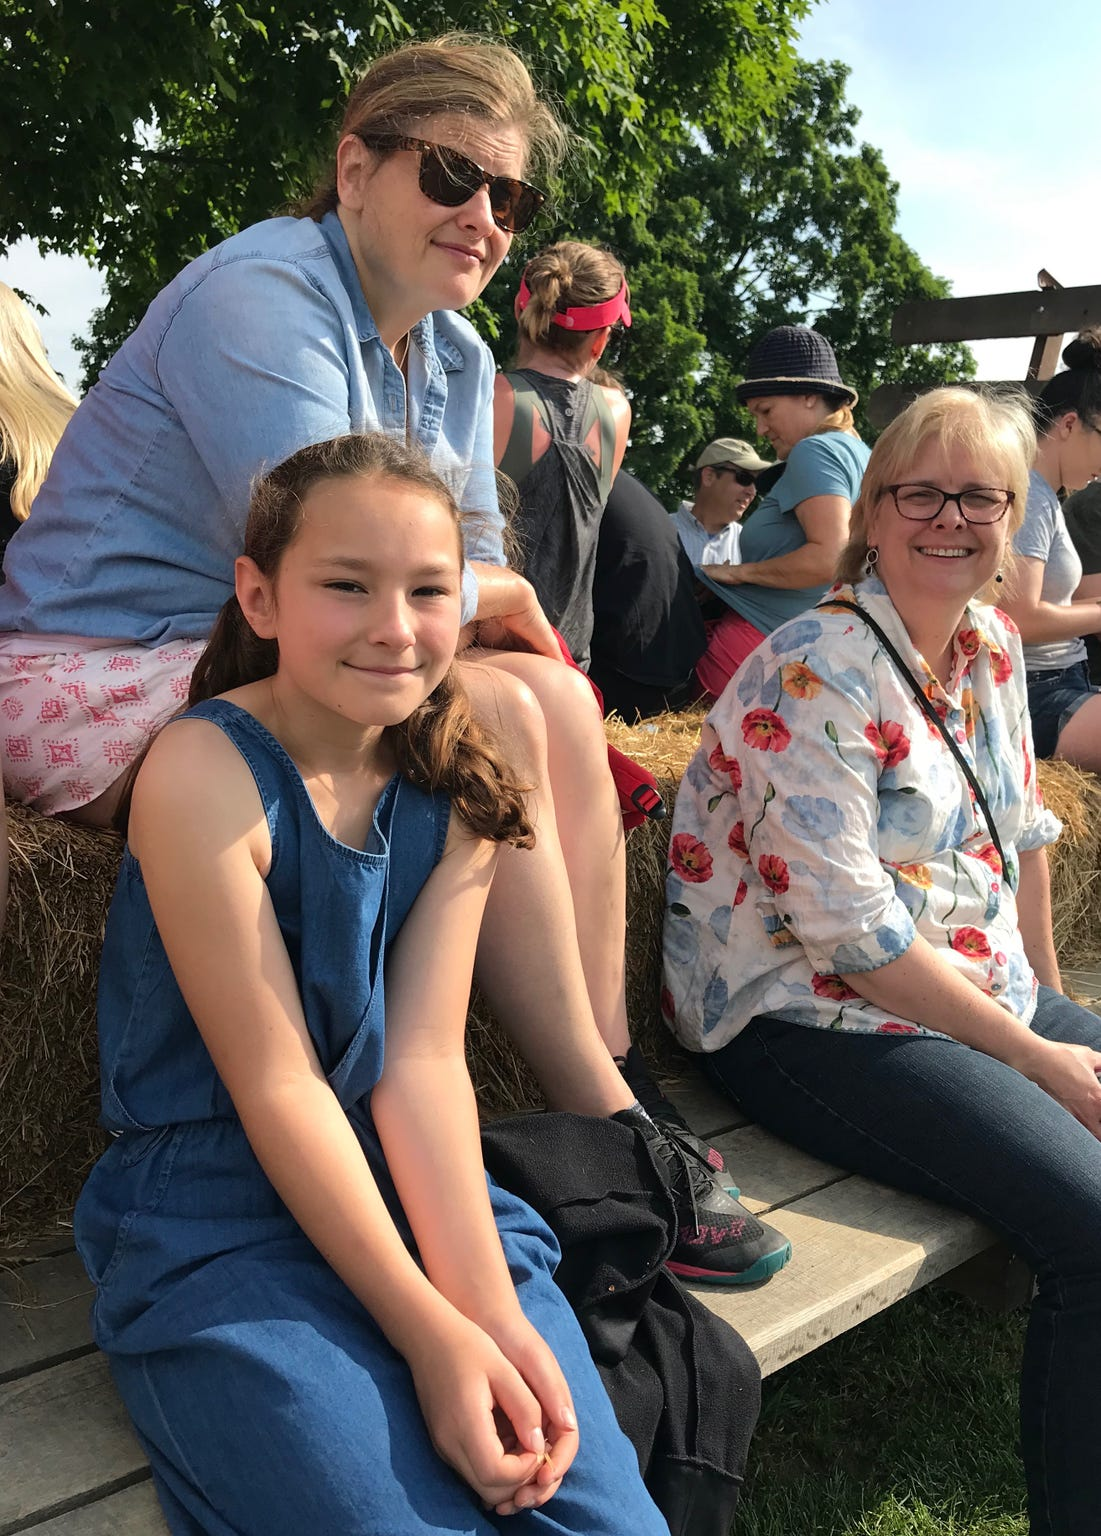 Lily Lind and mom Mary Lind, of Middleway, West Virginia. A day with Temple Grandin on Polyface Farms in Swoope, Virginia, on Wednesday, May 29, 2019.